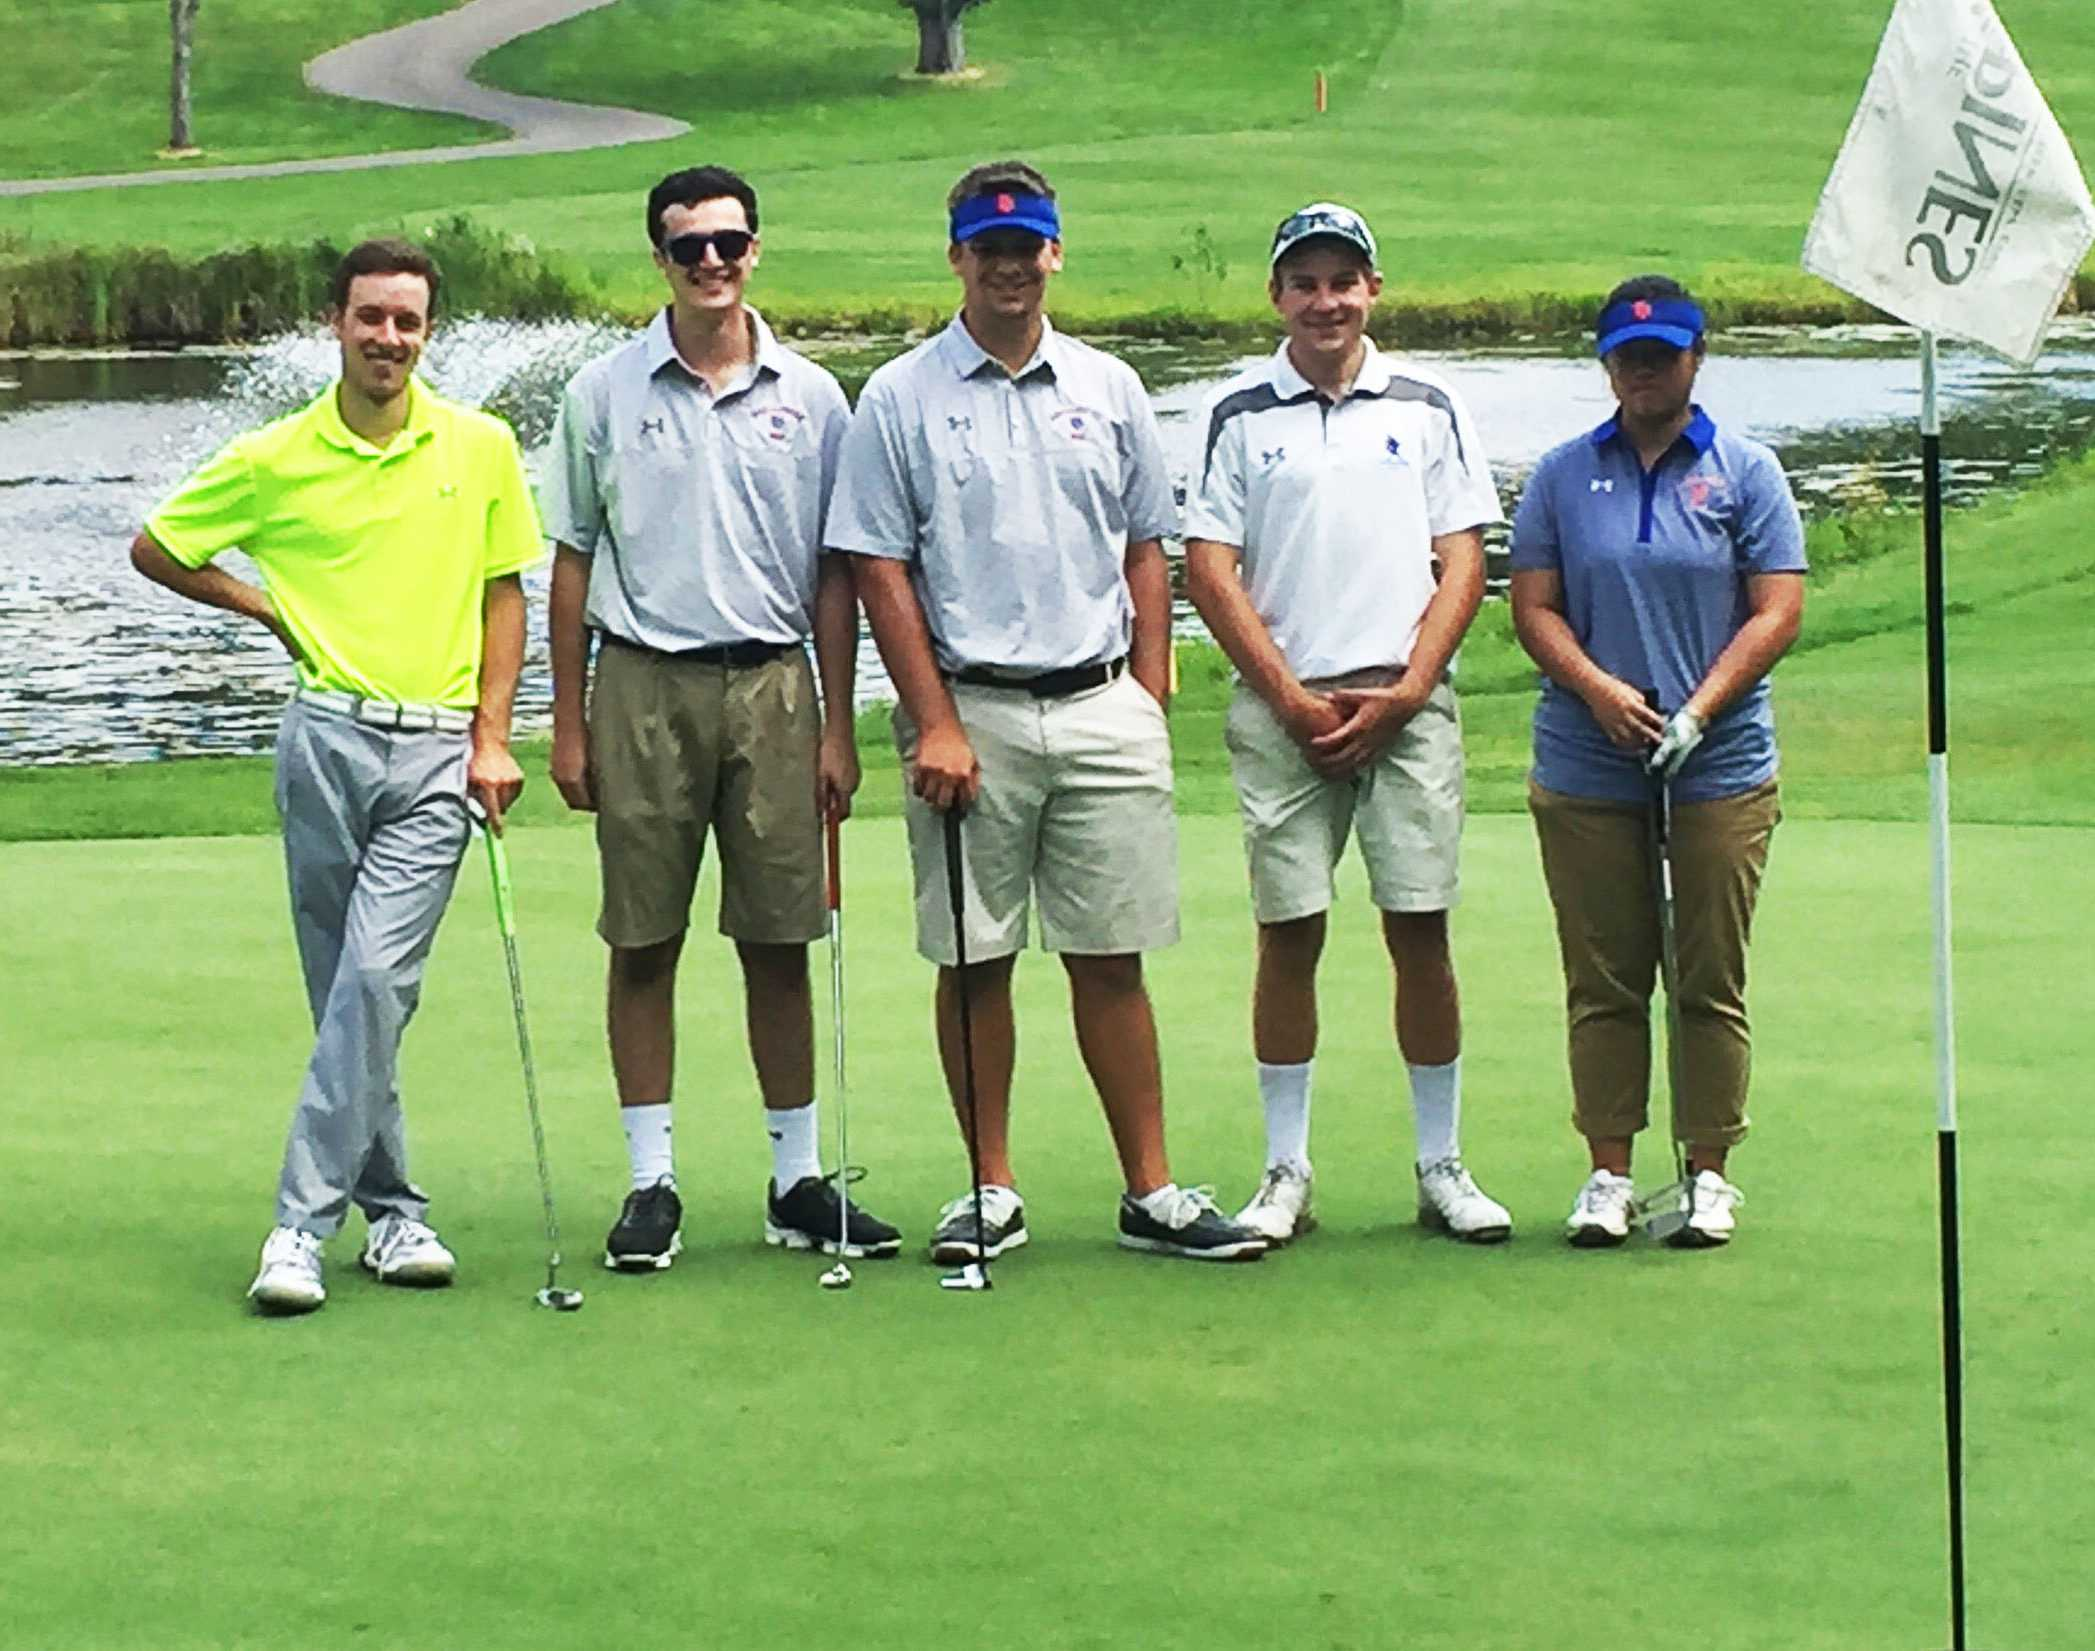 Despite small numbers, the Macalester golf team plans for a brighter future with new head coach. Photo courtesy of Tucker Weisman.